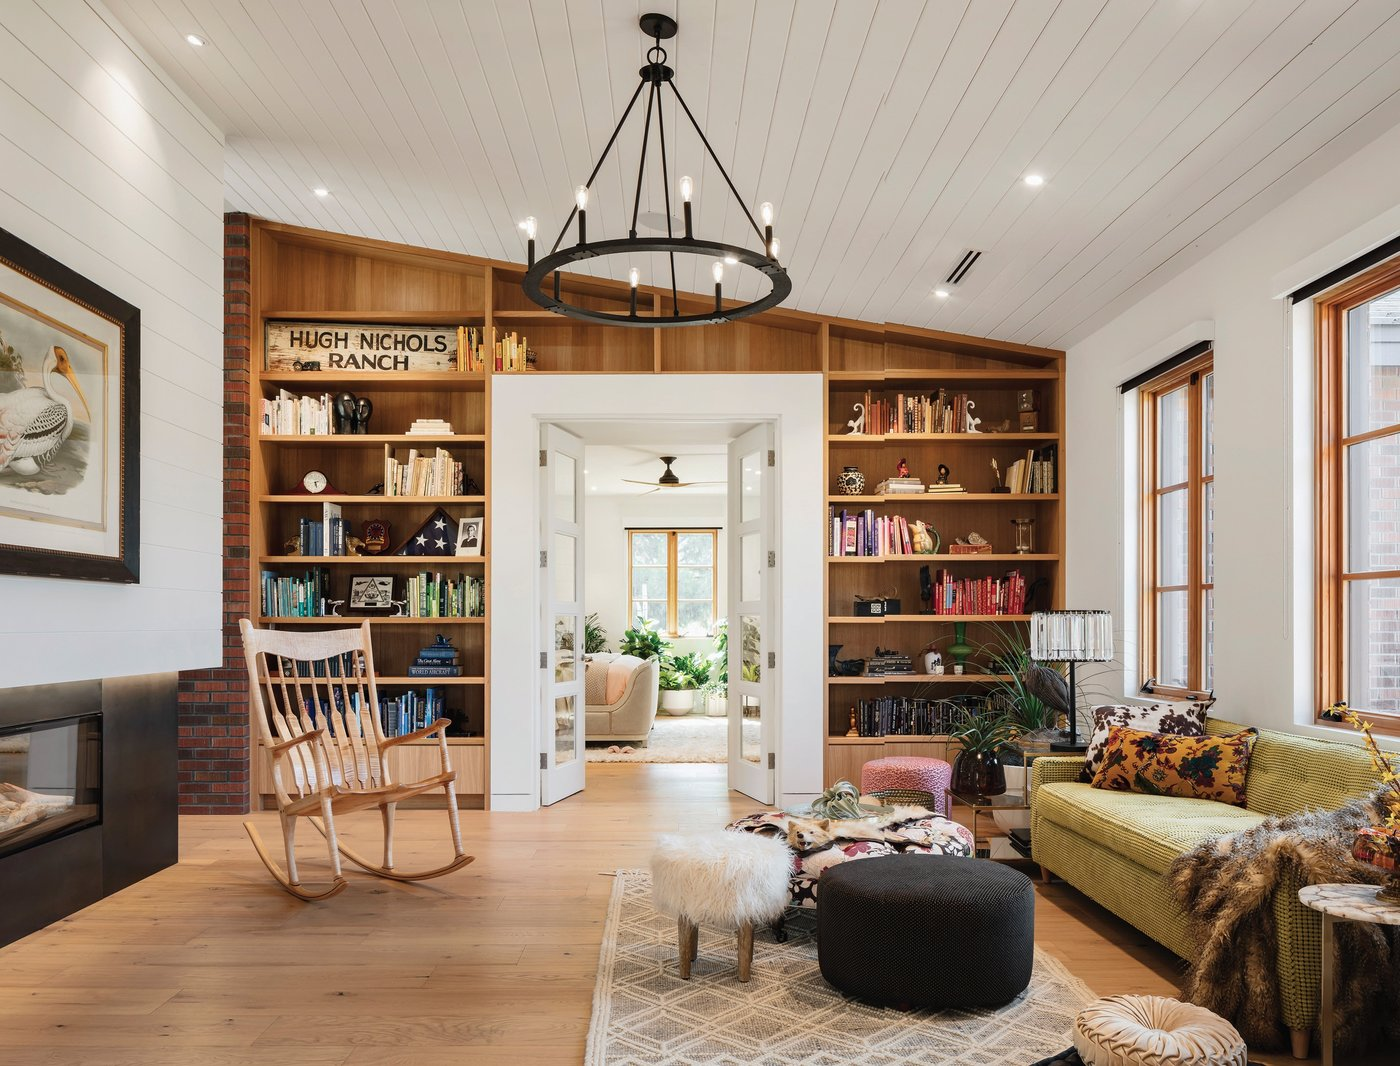 A custom rocking chair by Chase Warren Design completes the space. Photographed by Roehner   Ryan Photography